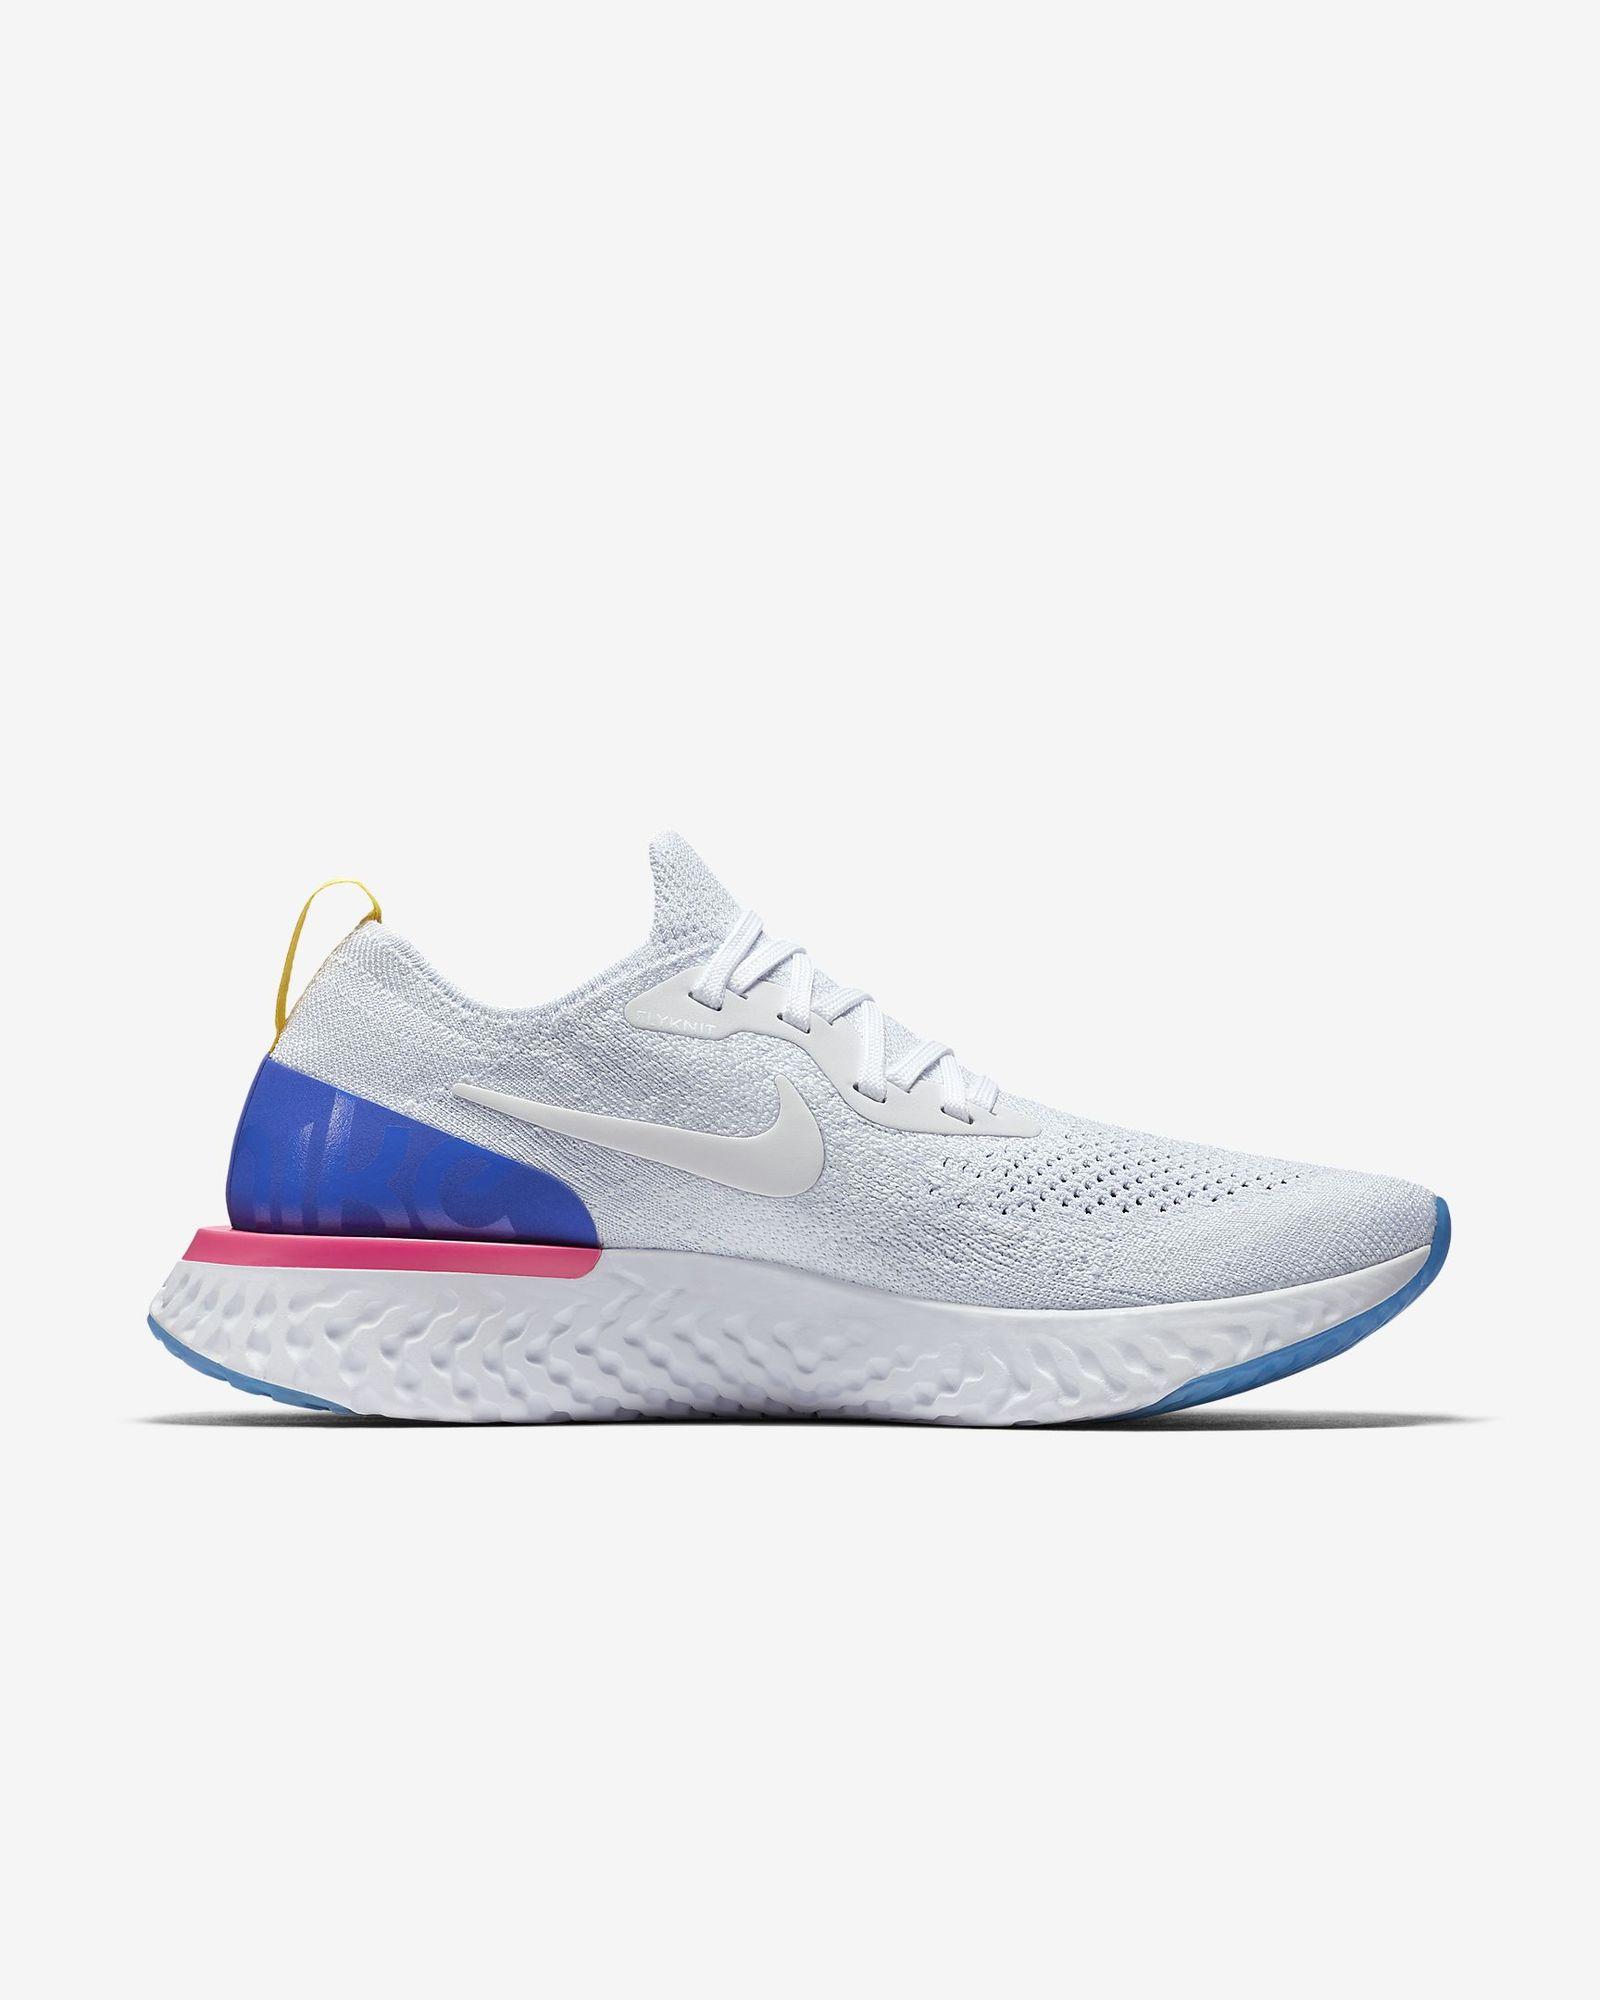 Nike Lady Epic React Flyknit in Weiß Blau Pink